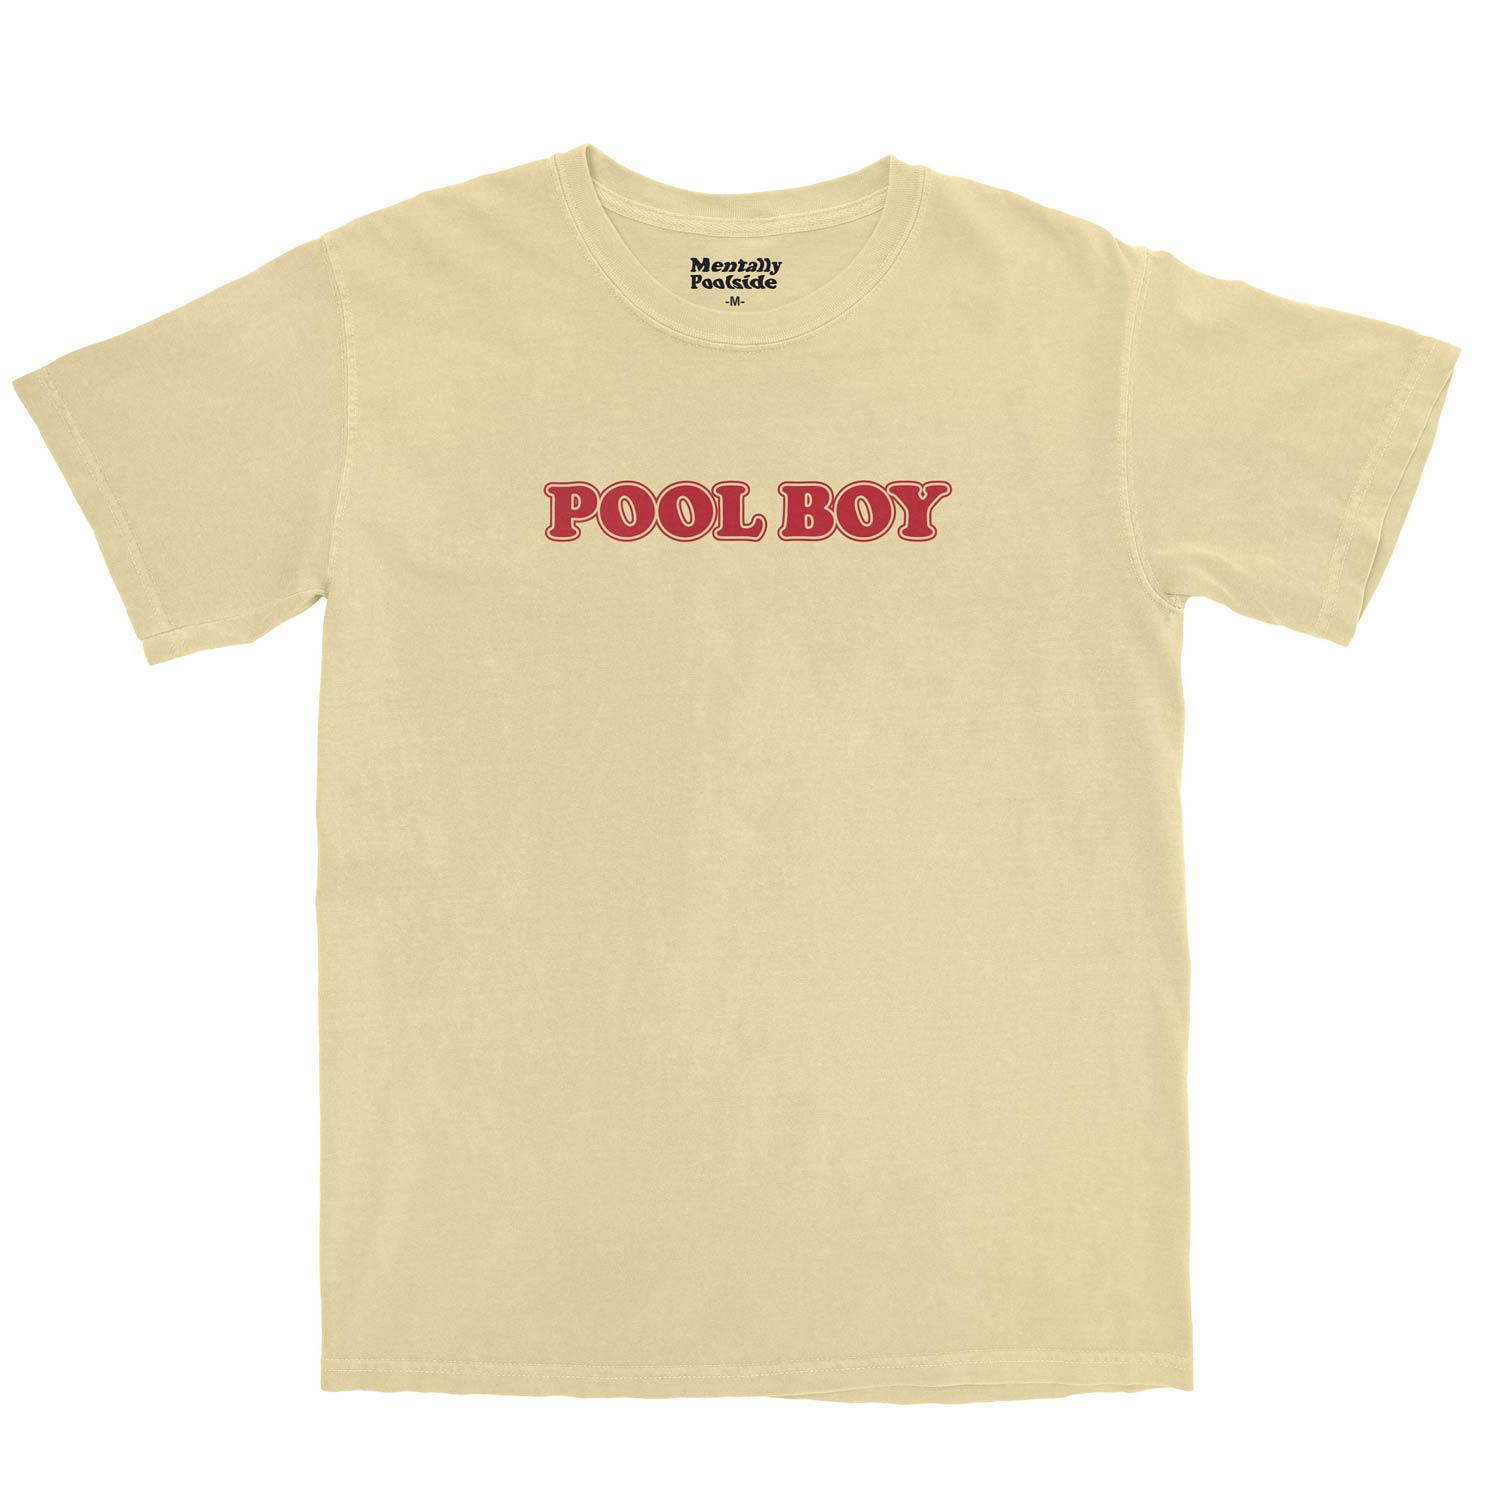 Pool Boy-Tee shirt-Comfort colors-Butter-S-Mentally Poolside